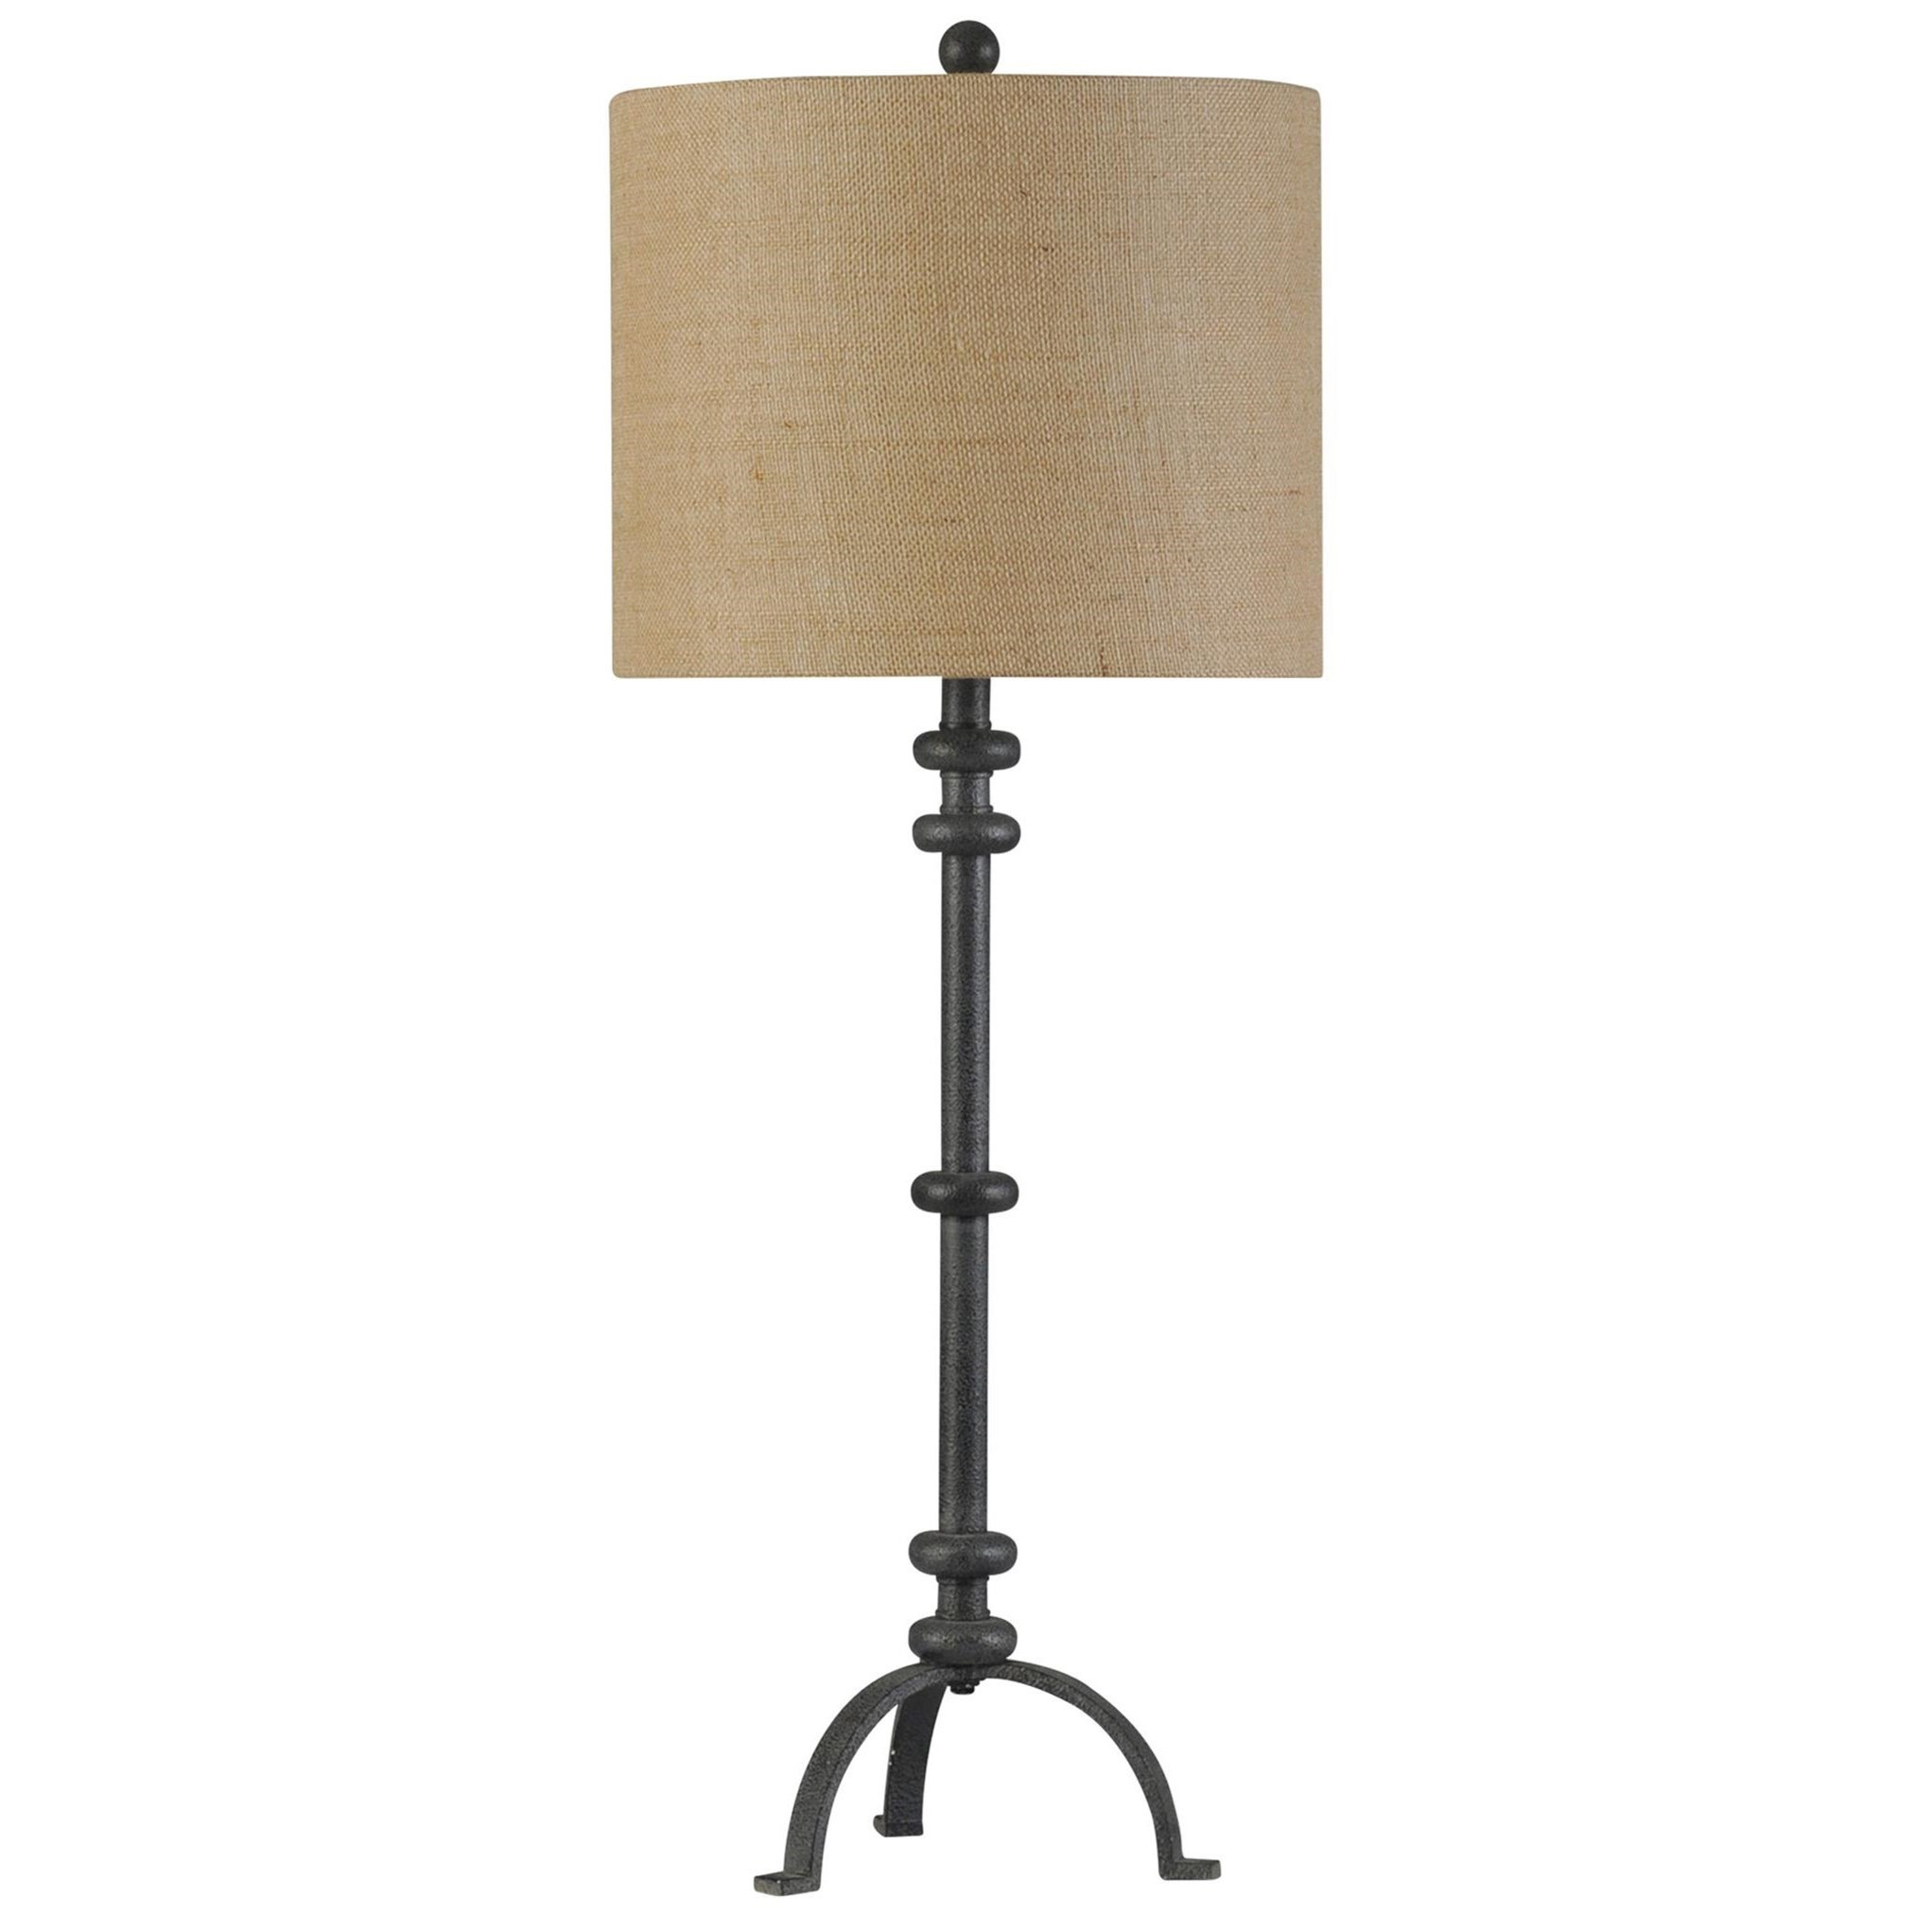 Lamps Traditional Cast Iron Buffet Lamp by StyleCraft at Wilcox Furniture